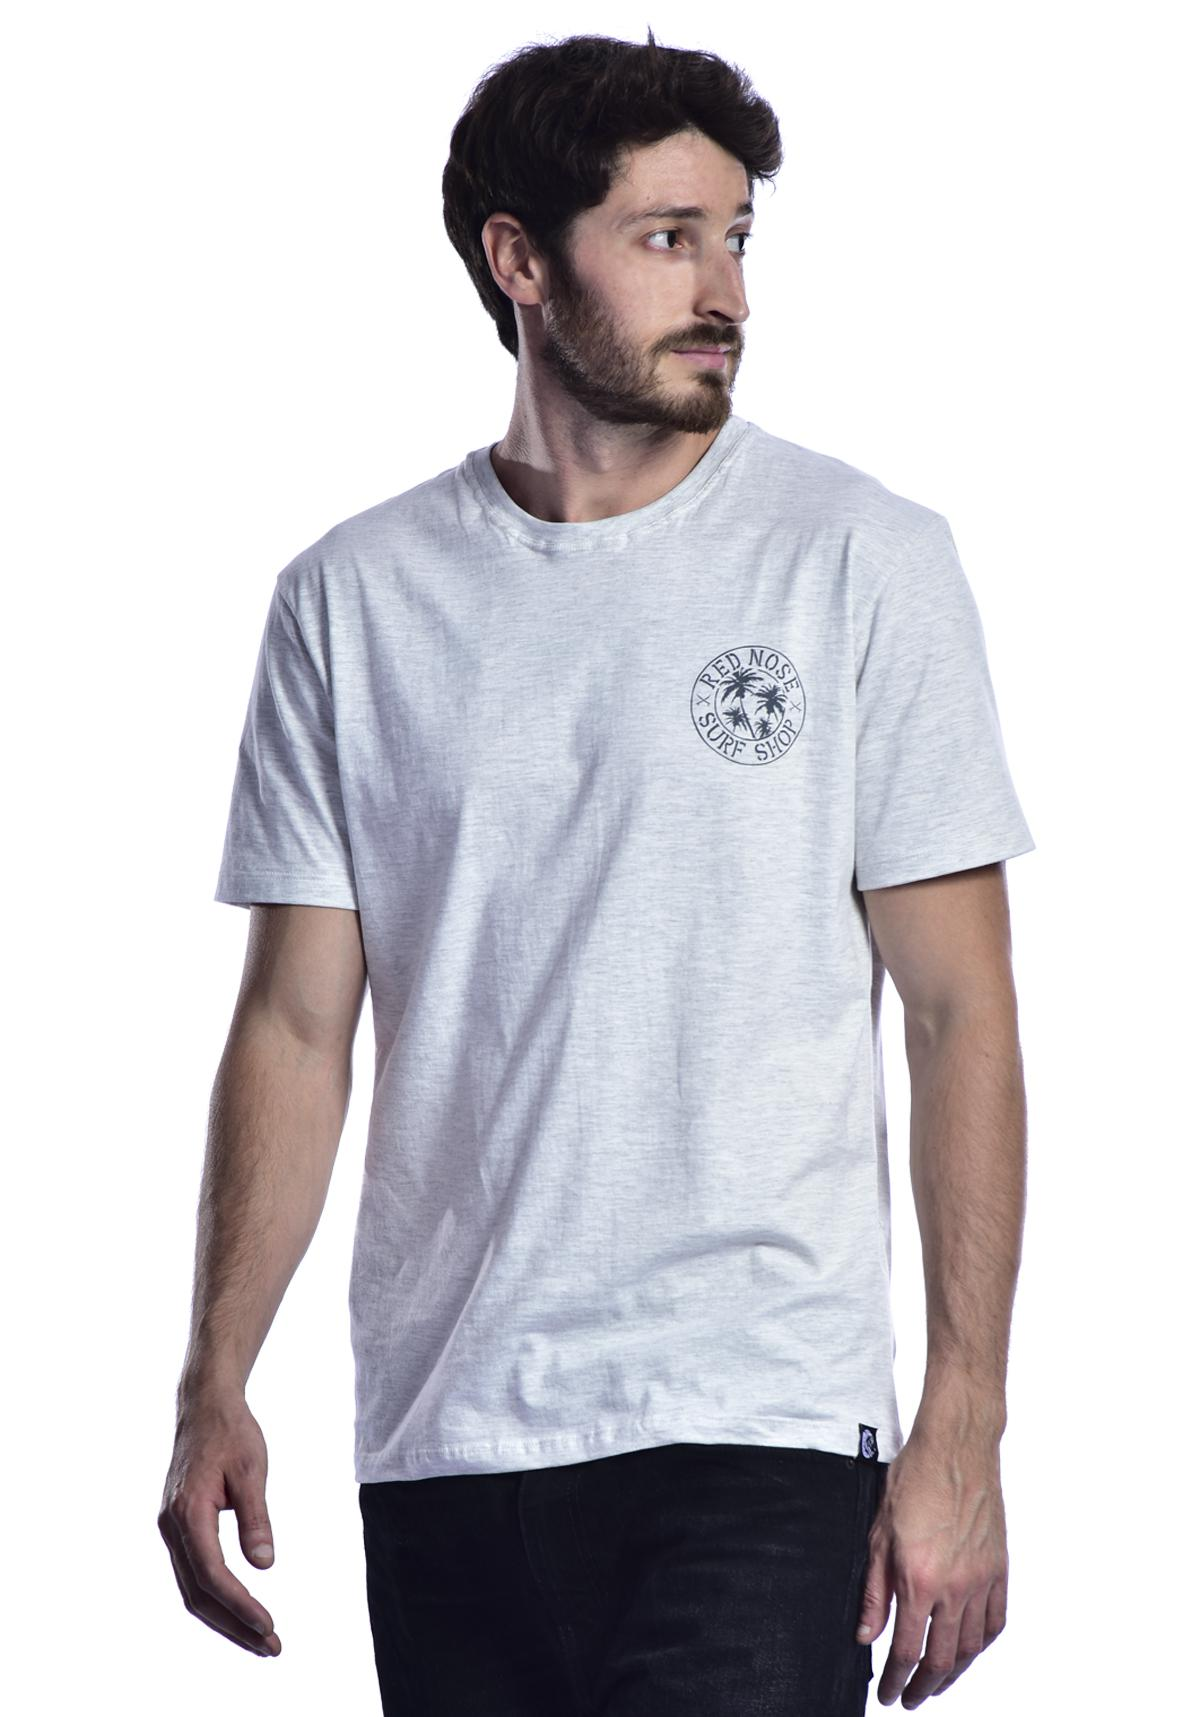 Camiseta Red Nose Surf Shop - Cinza Claro P